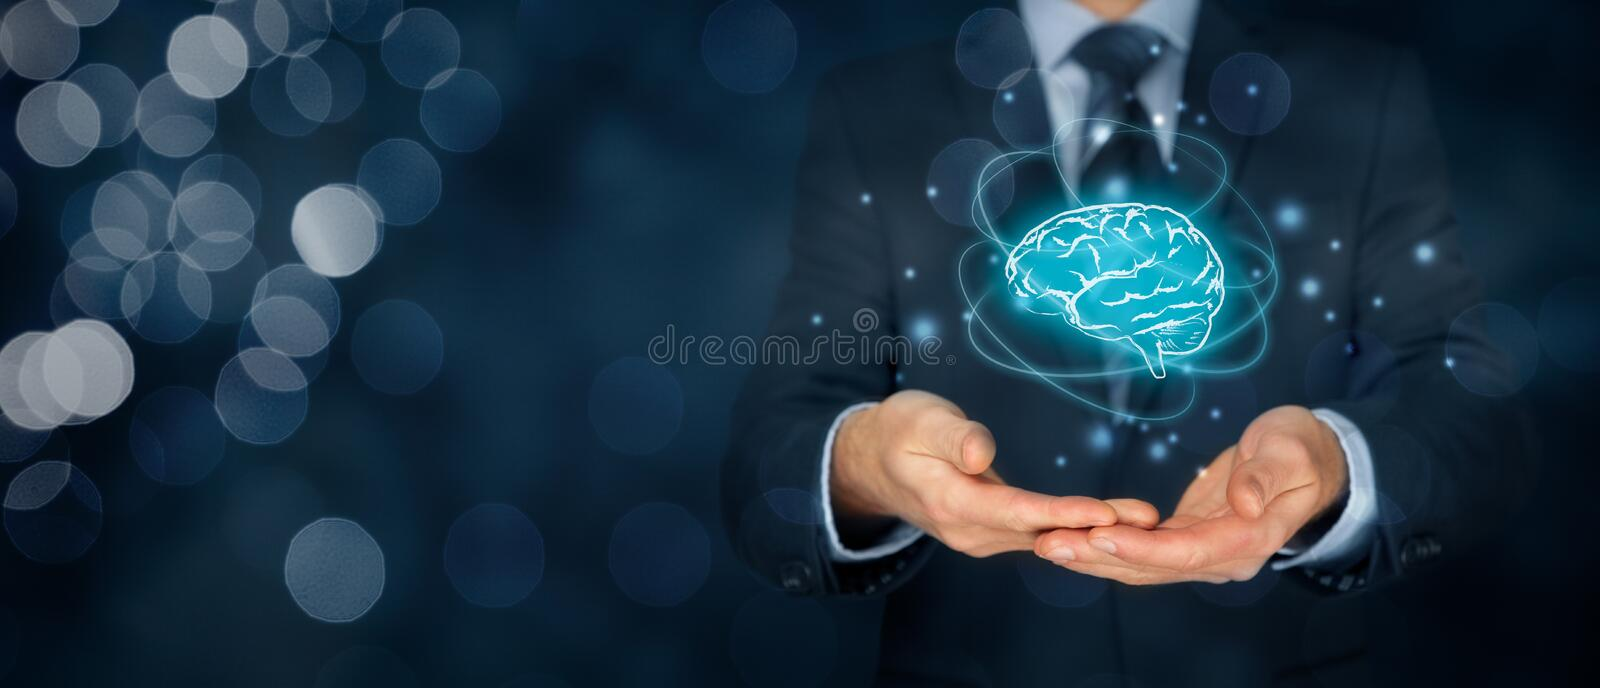 Artificial intelligence and creativity. Artificial intelligence AI, machine deep learning, creativity, headhunter, innovation and intellectual property rights royalty free stock photos